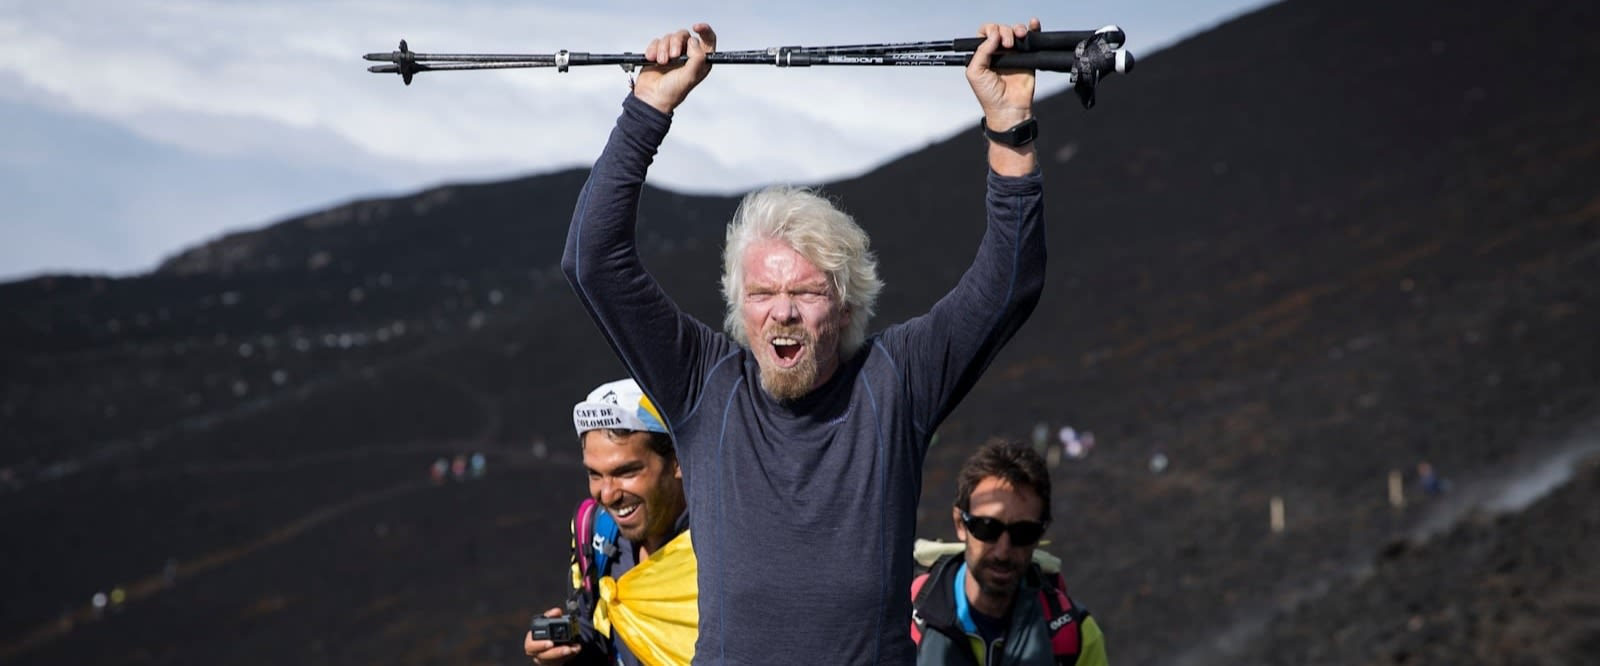 Richard Branson cheering on a hike during the 2016 Strive Challenge